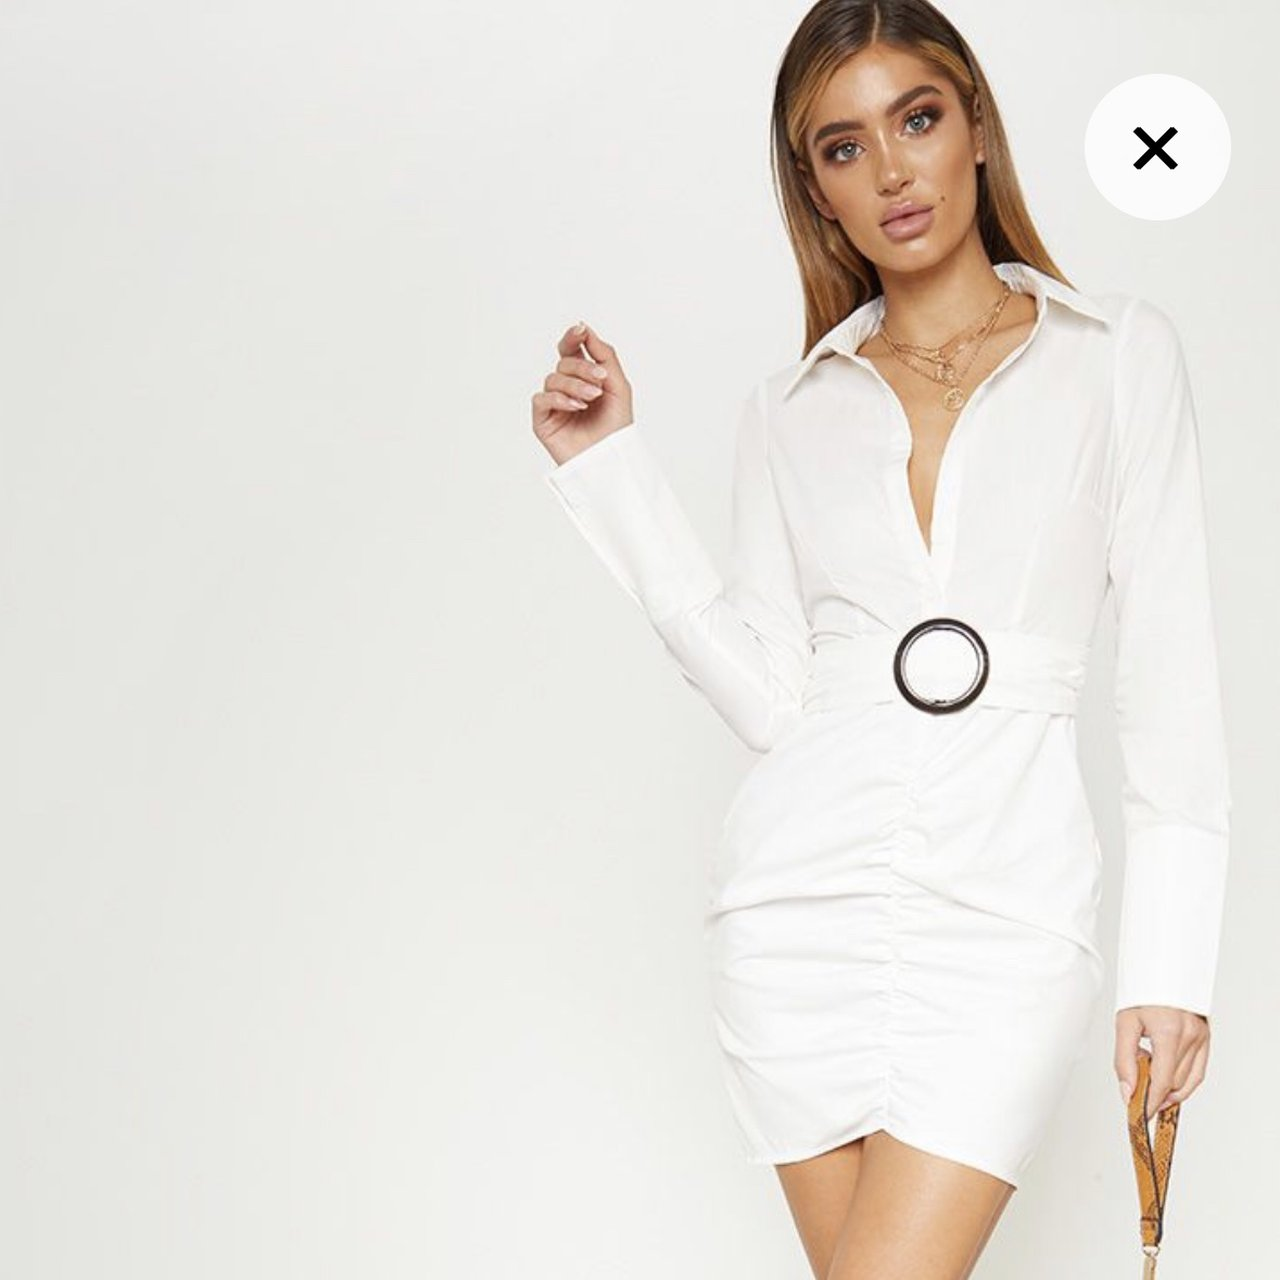 80b4effd96158 White Plunge Ruched Tortoise Belted Bodycon Shirt little - Depop